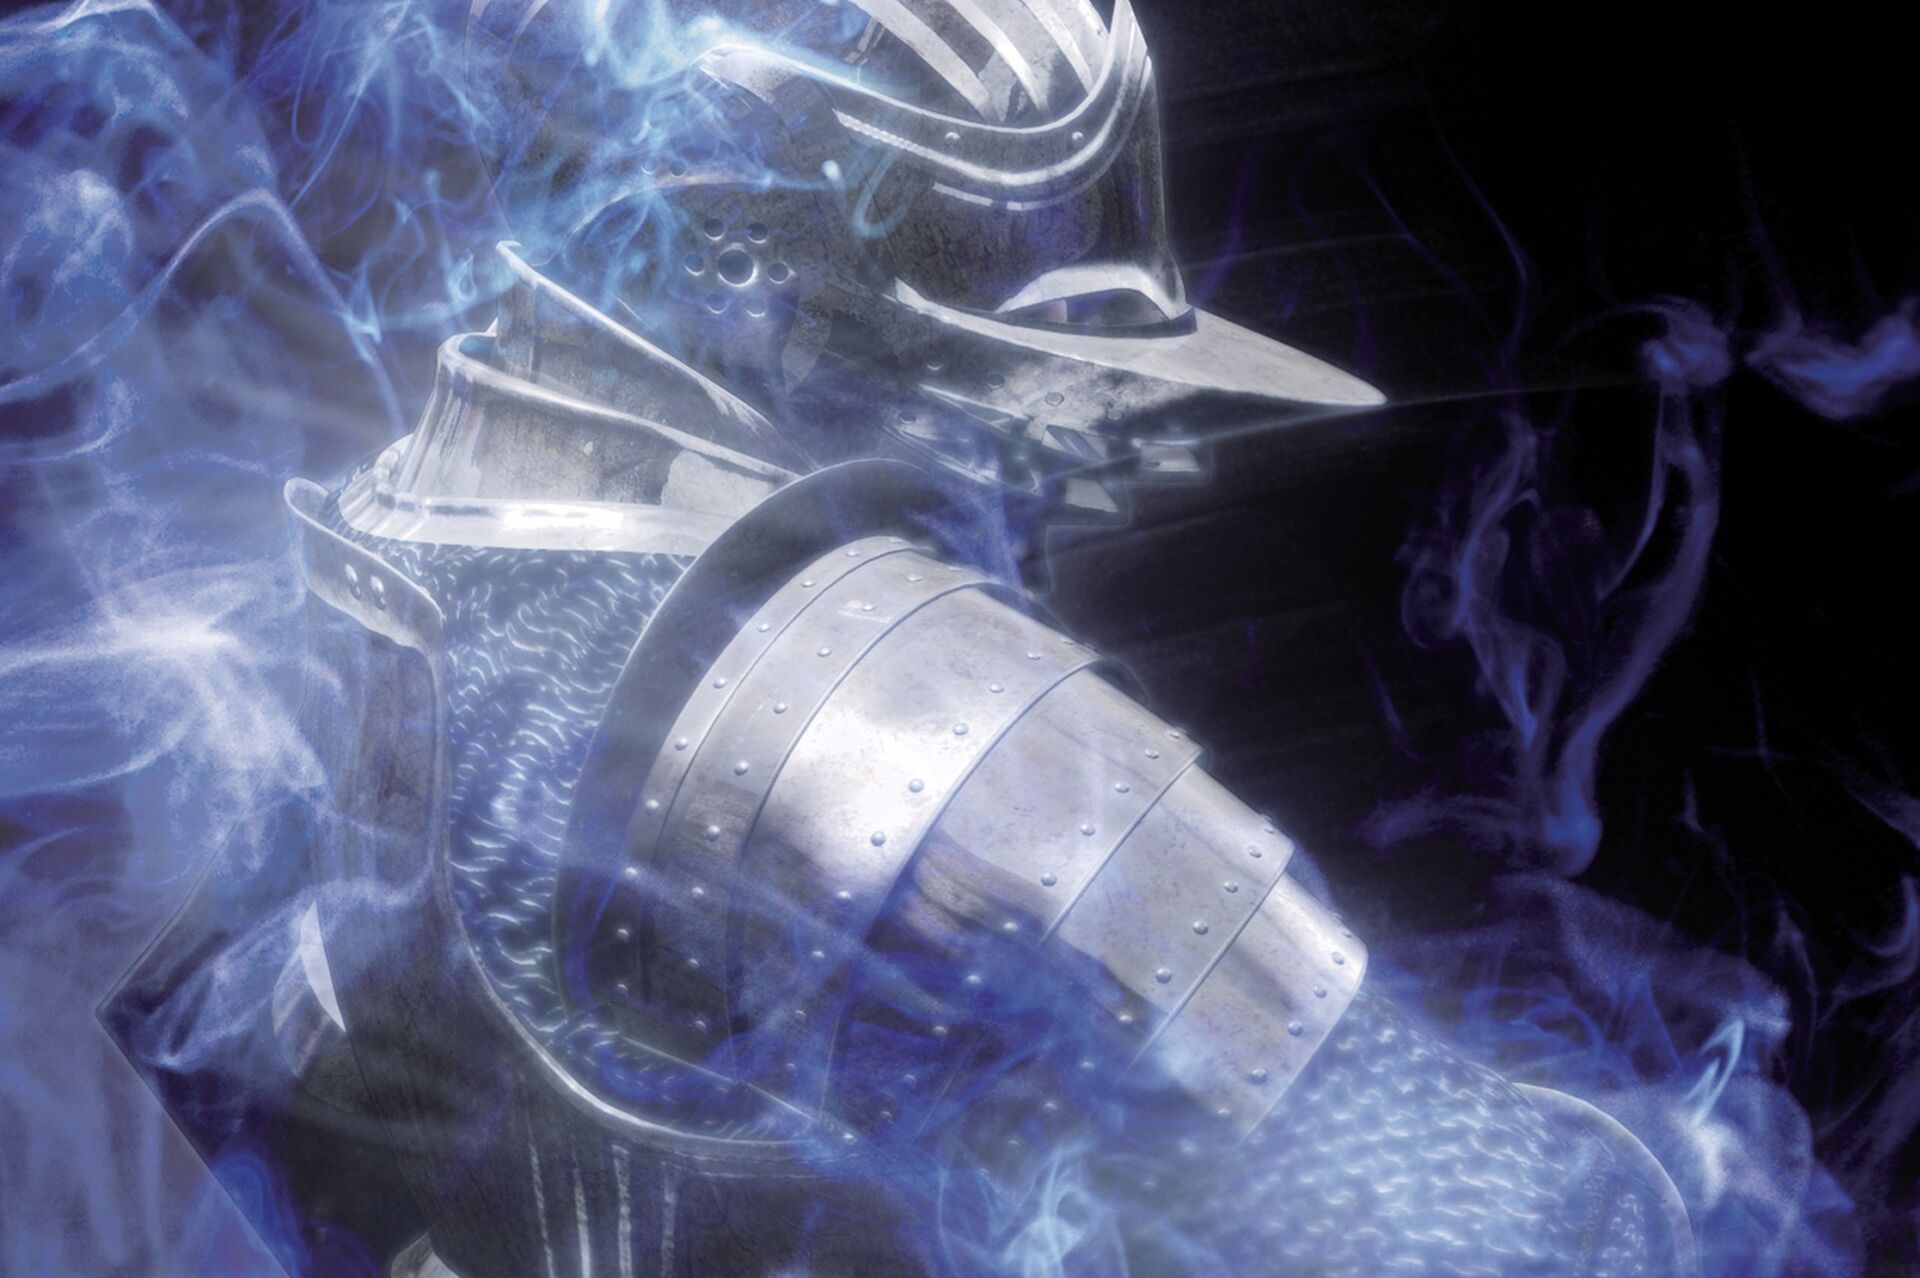 After nine years, Demon's Souls' servers are going offline